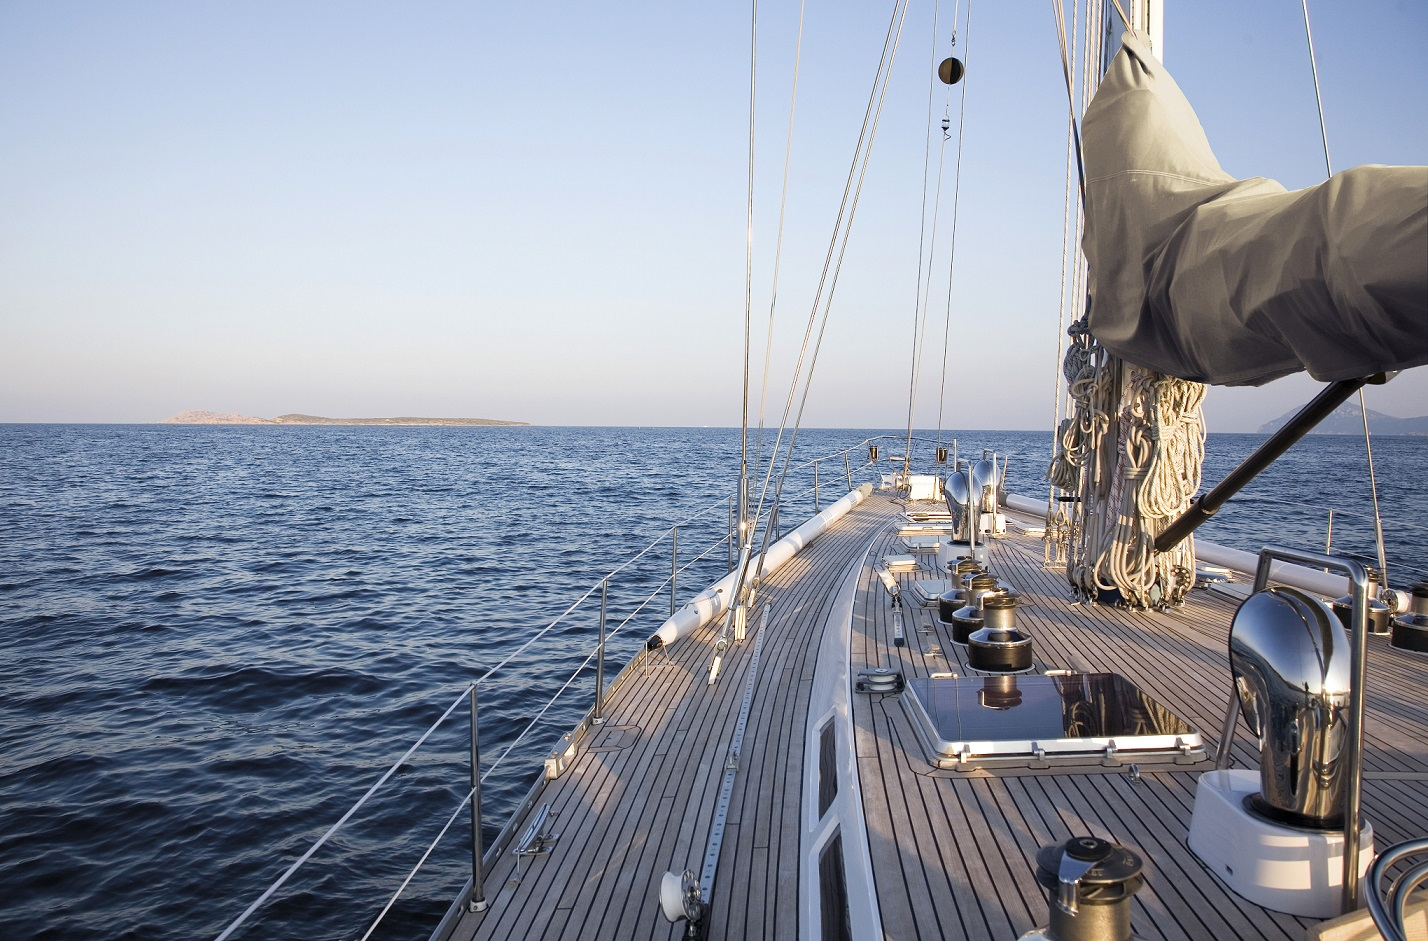 S/Y CYCLOS II yacht for charter deck